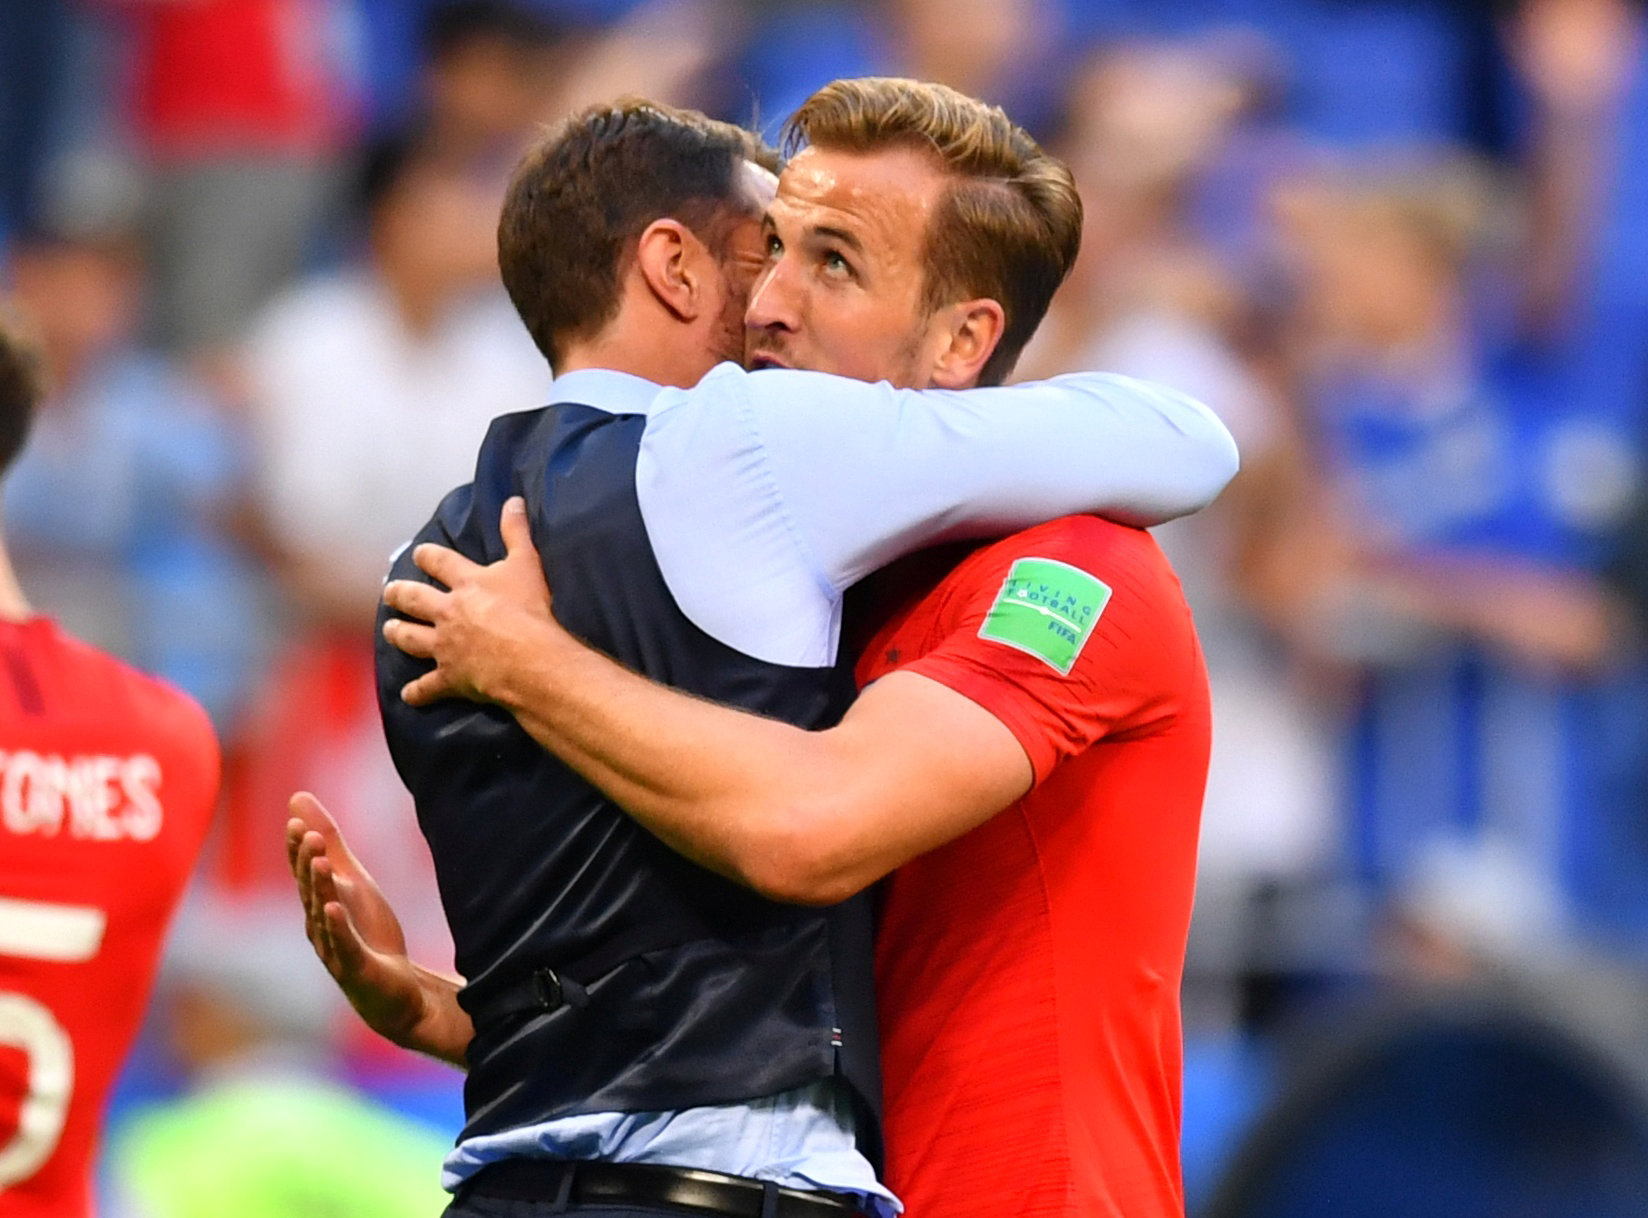 Harry Kane embraces Gareth Southgate following England's quarter-final victory over Sweden. Picture: Action Images